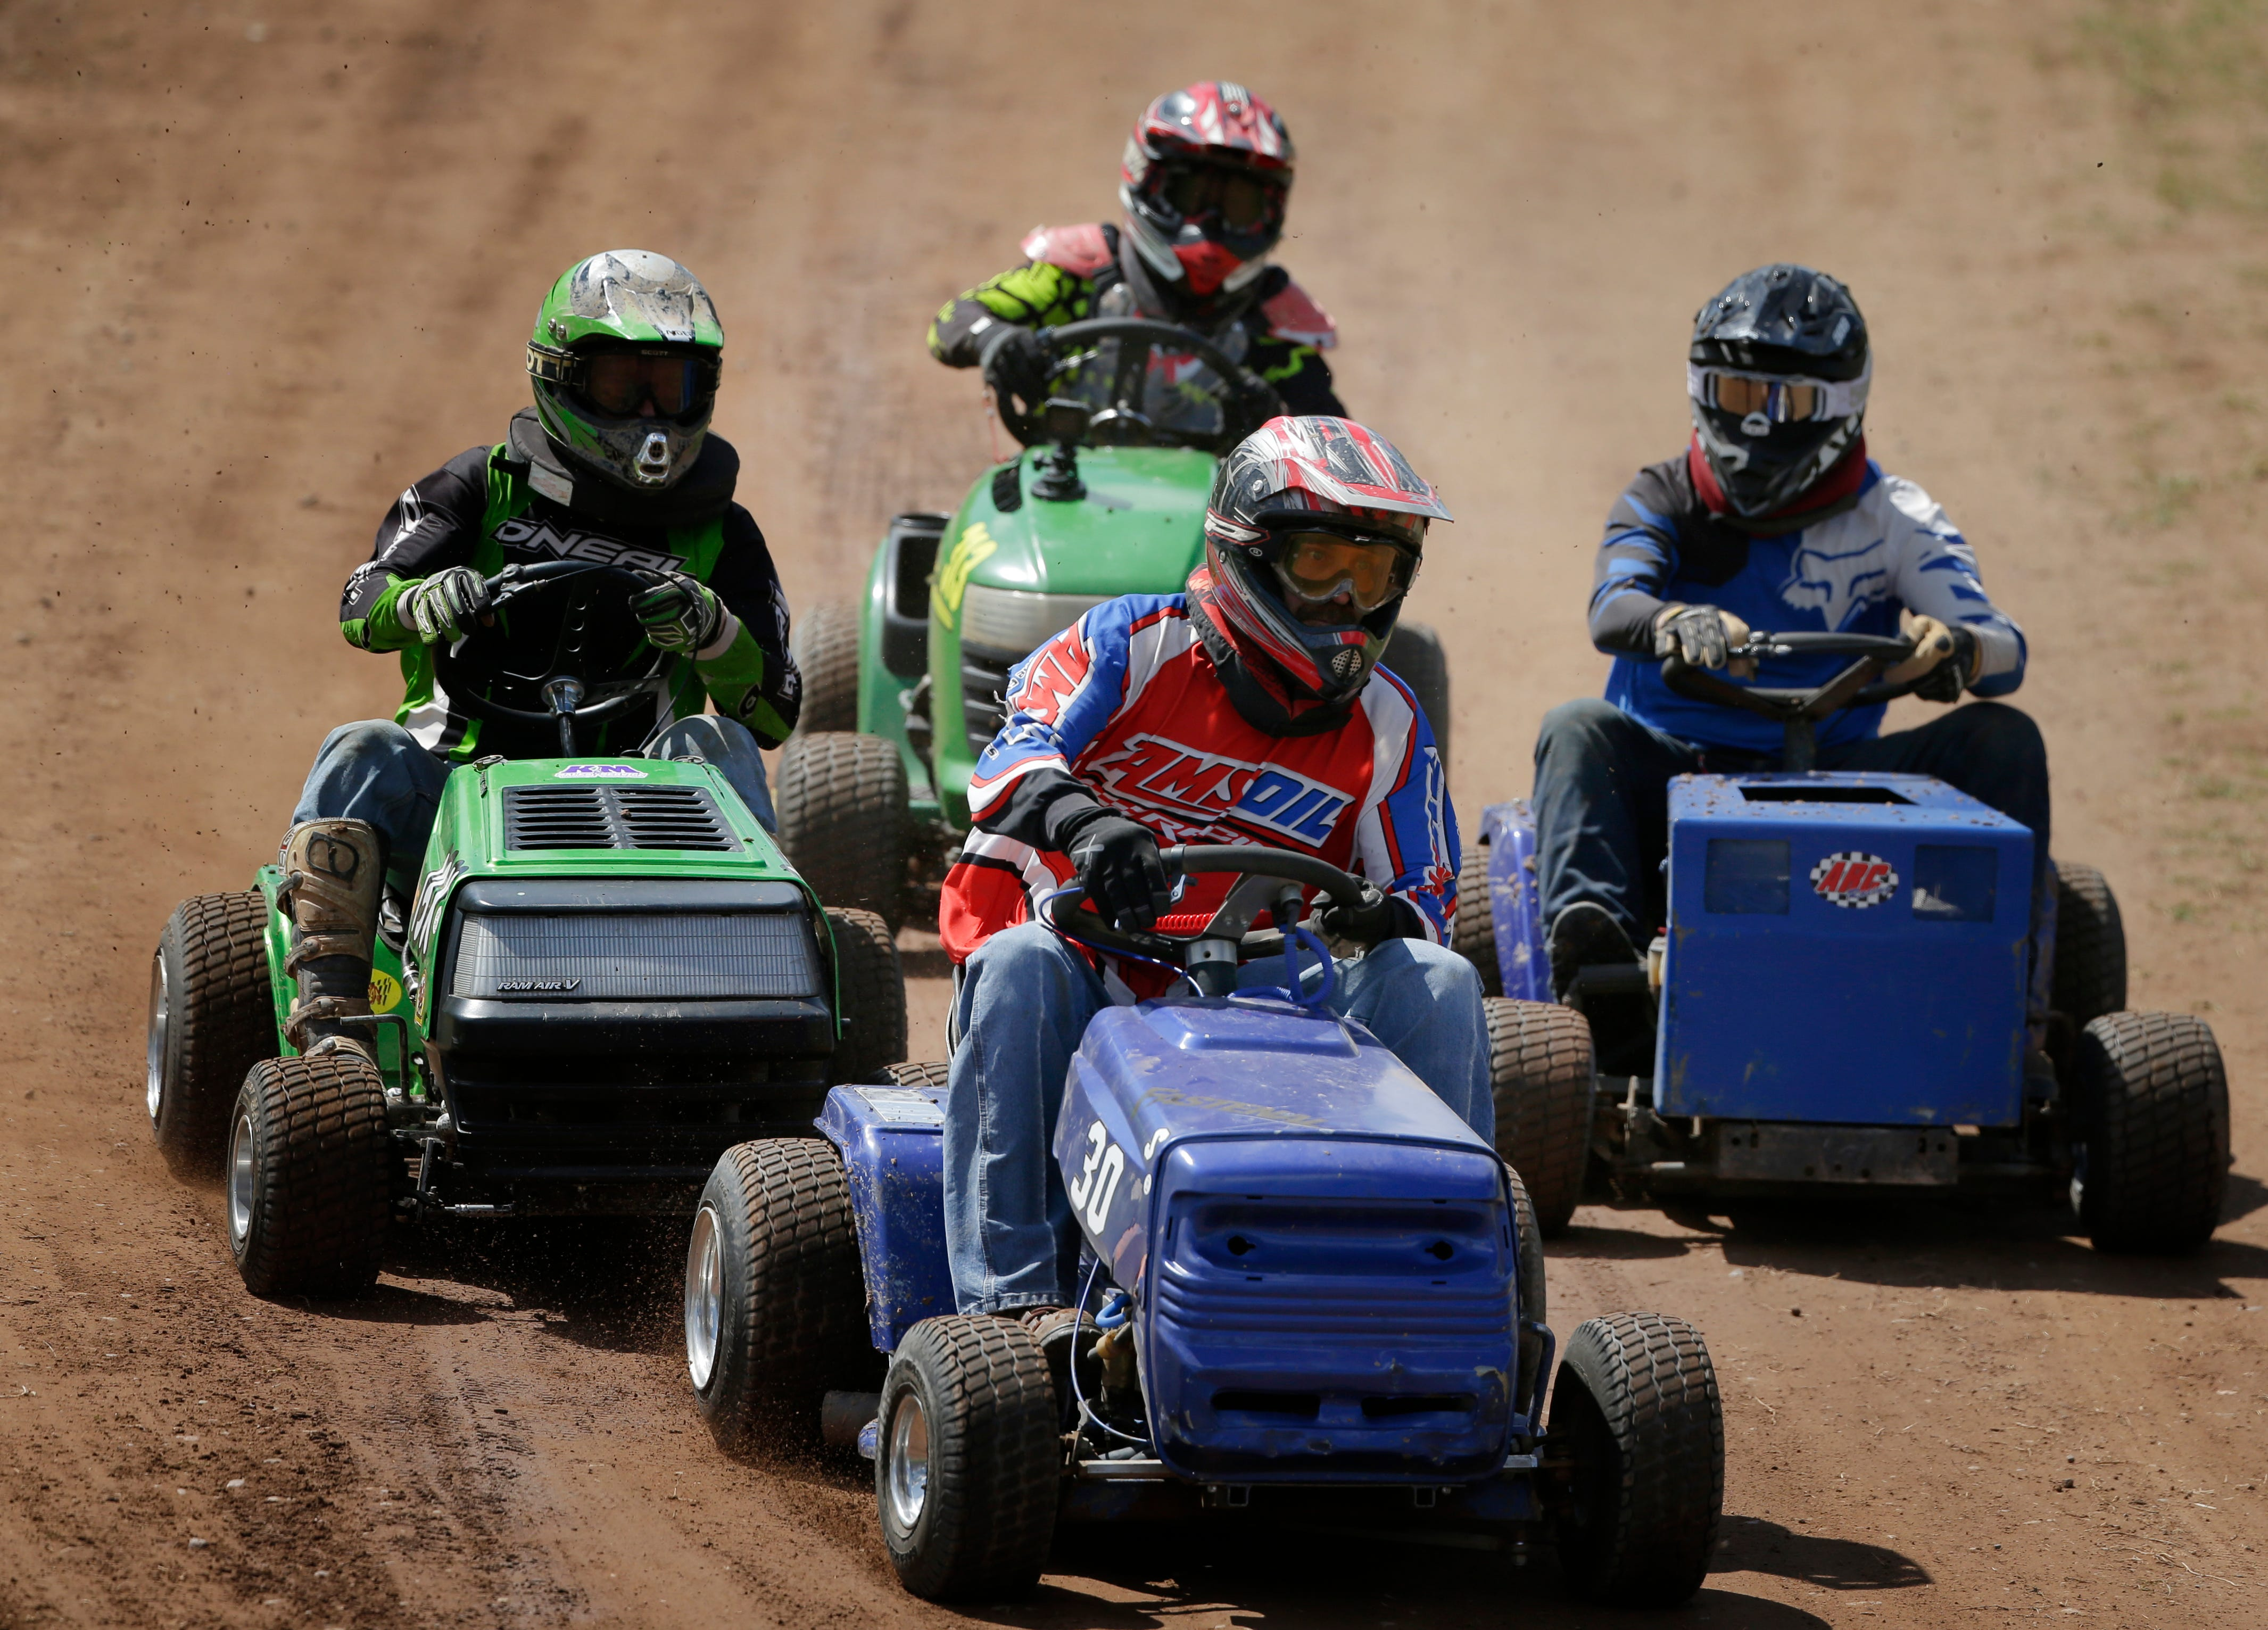 Wisconsin Lawn Mower Racers Compete For Trophies Bragging Rights